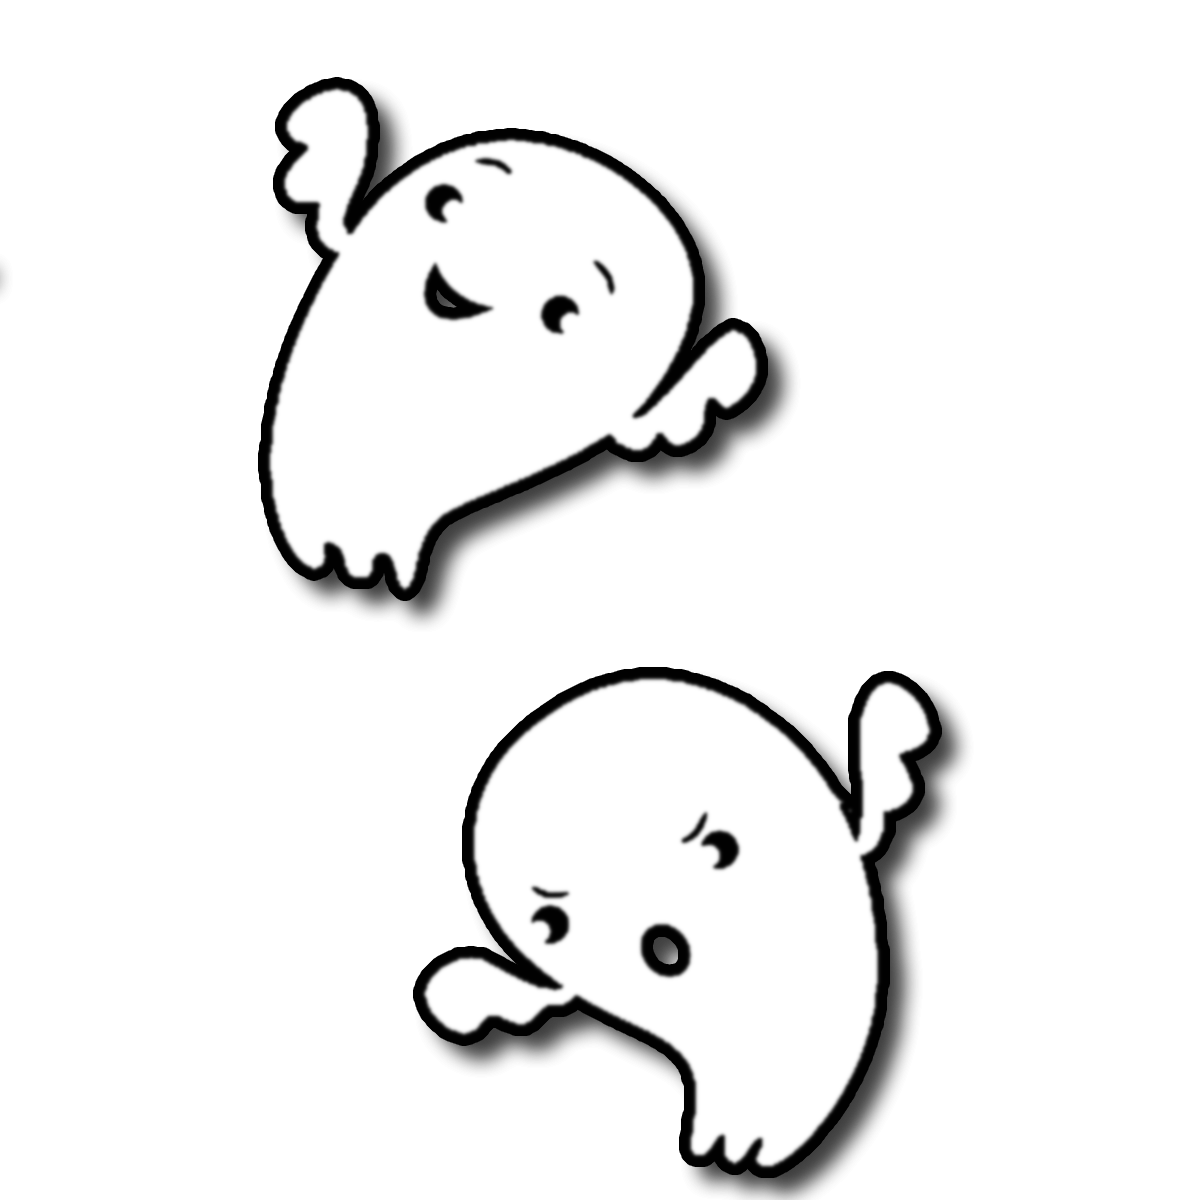 Ghost clipart blank background. Free transparent png download